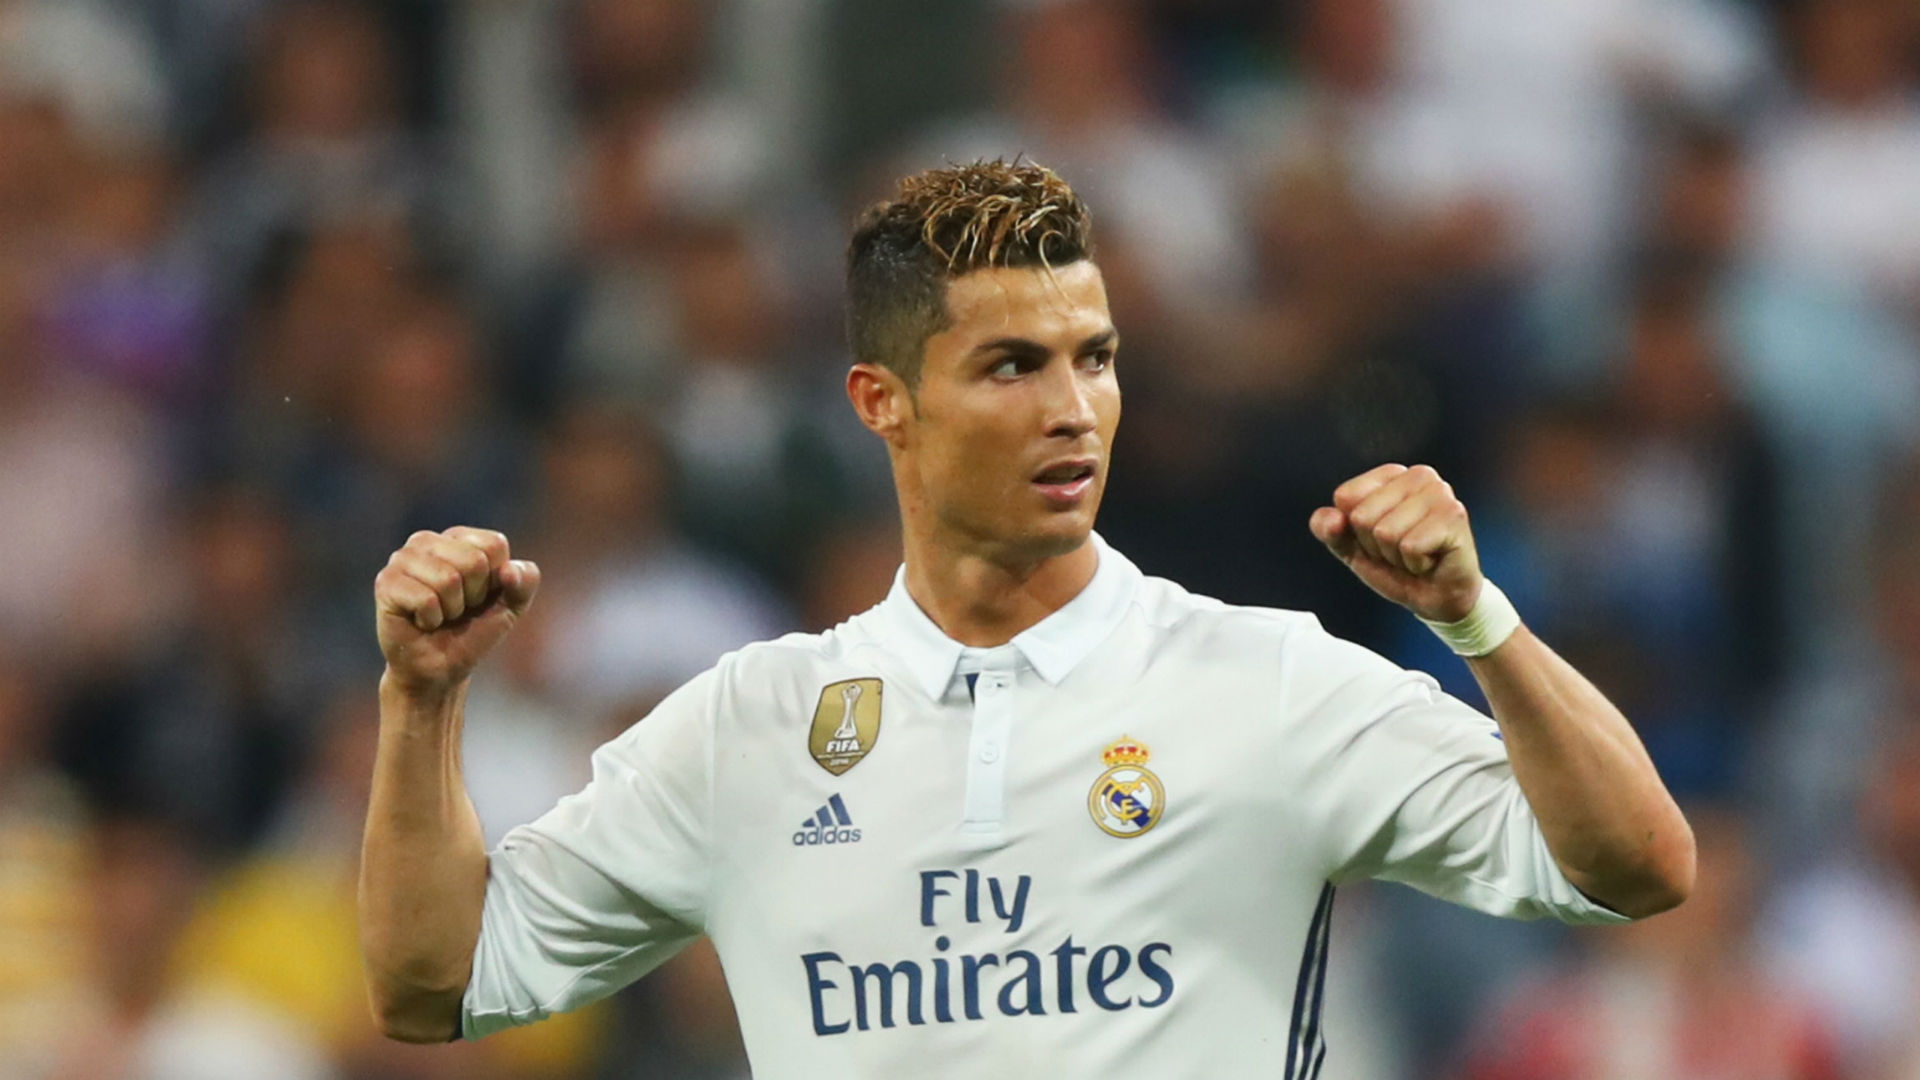 Champions League: Ronaldo undergoes drug test after hat-trick against Atletico